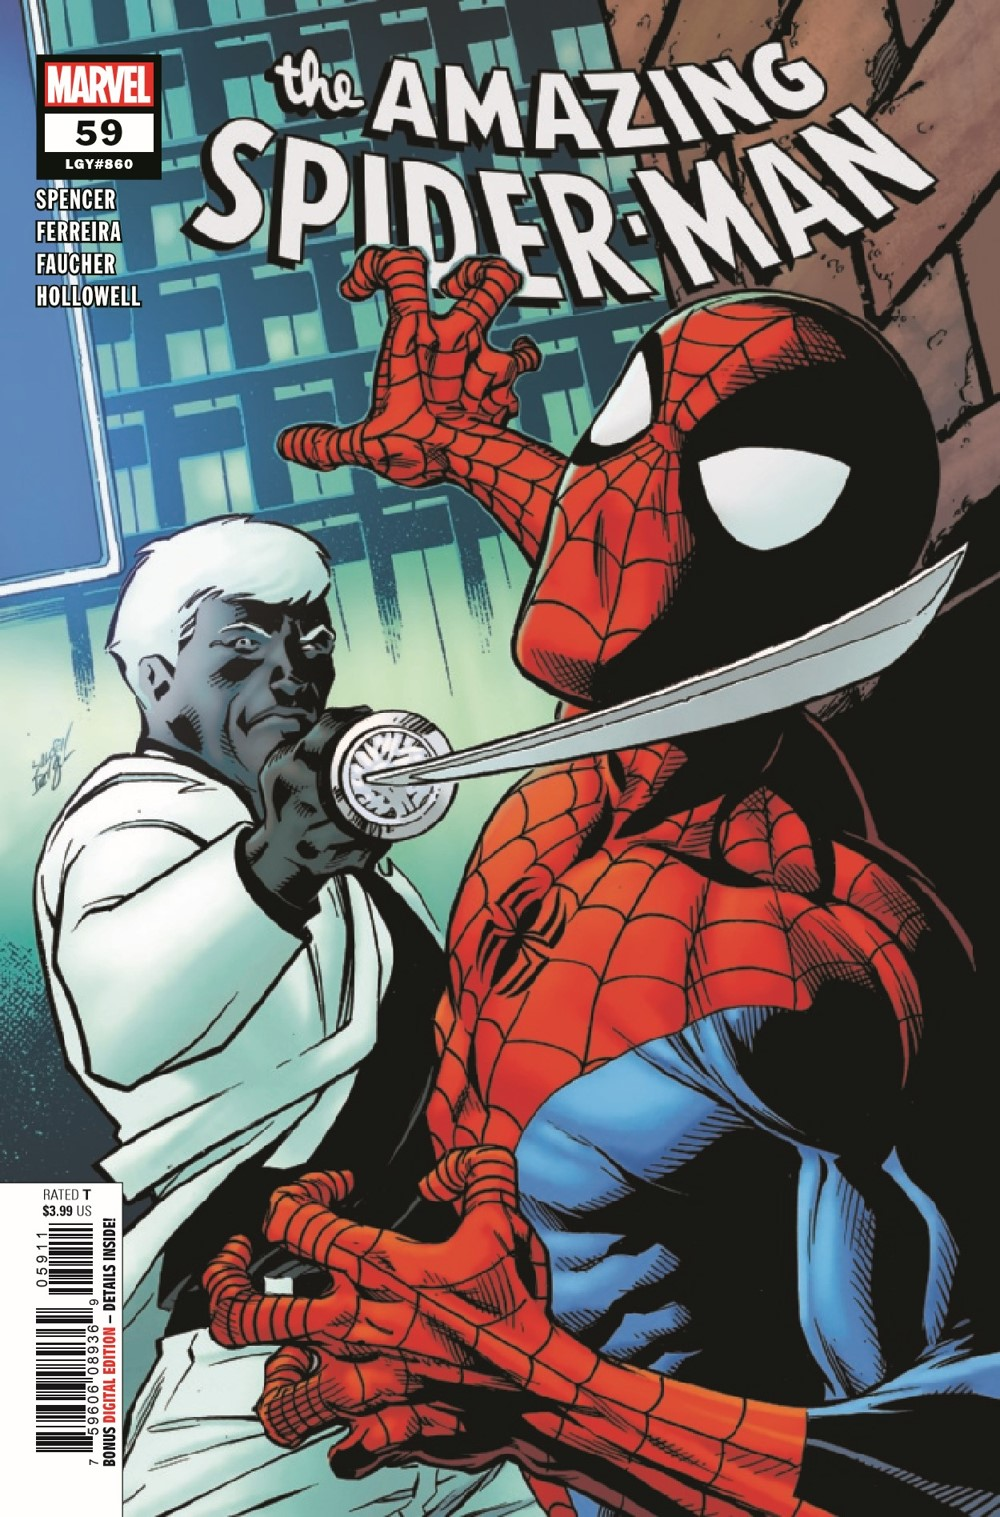 ASM2018059_Preview-1 ComicList Previews: THE AMAZING SPIDER-MAN #59